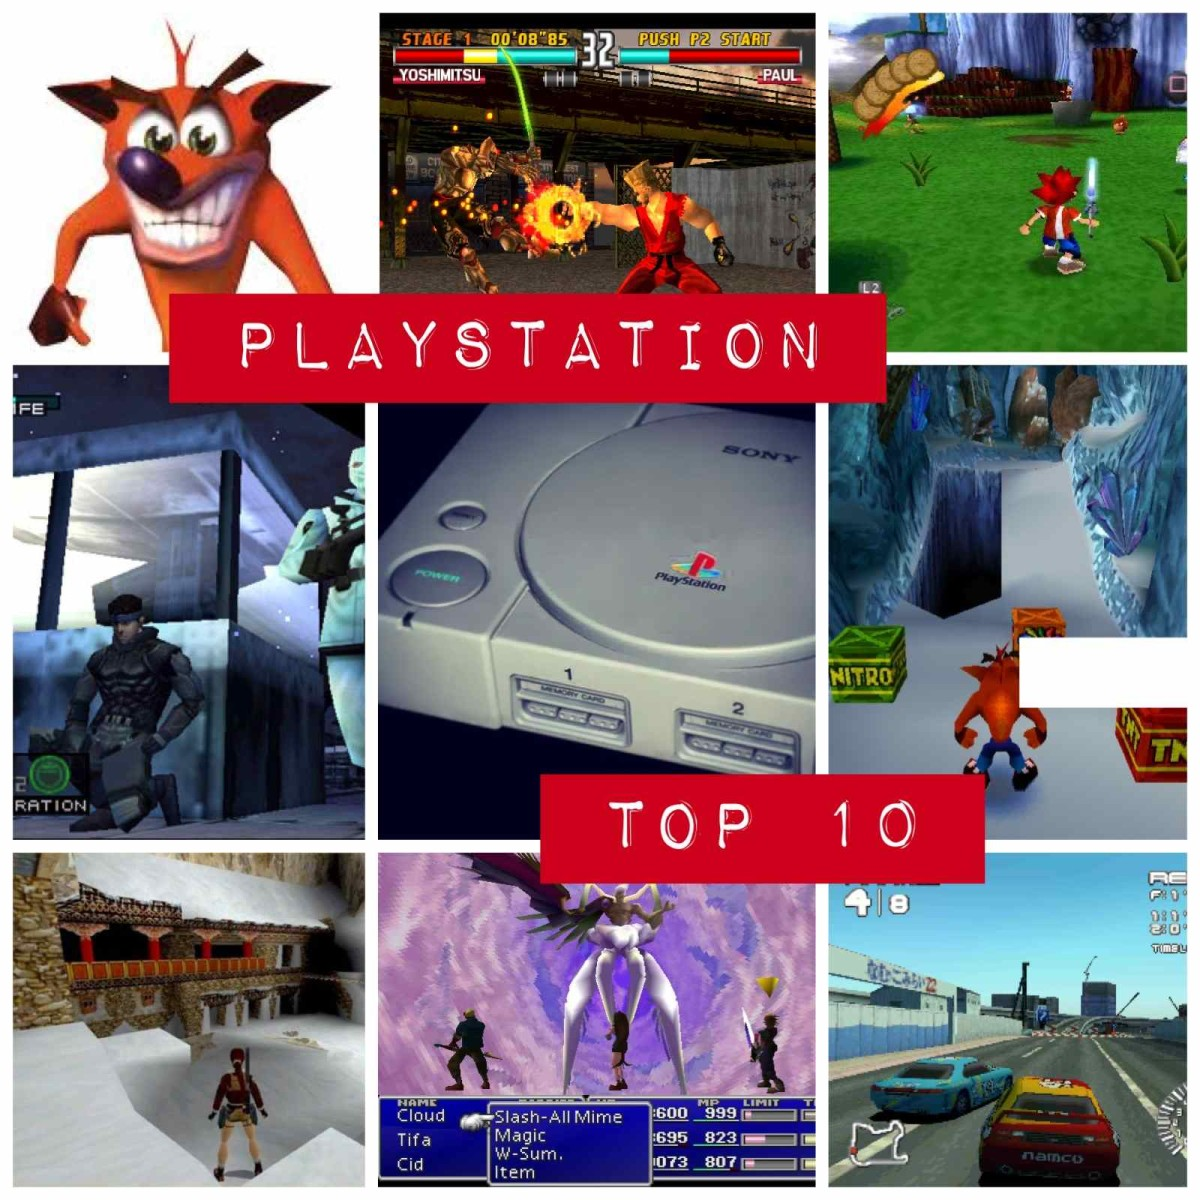 Top 10 Playstation 1 Games - The Best Of The Best